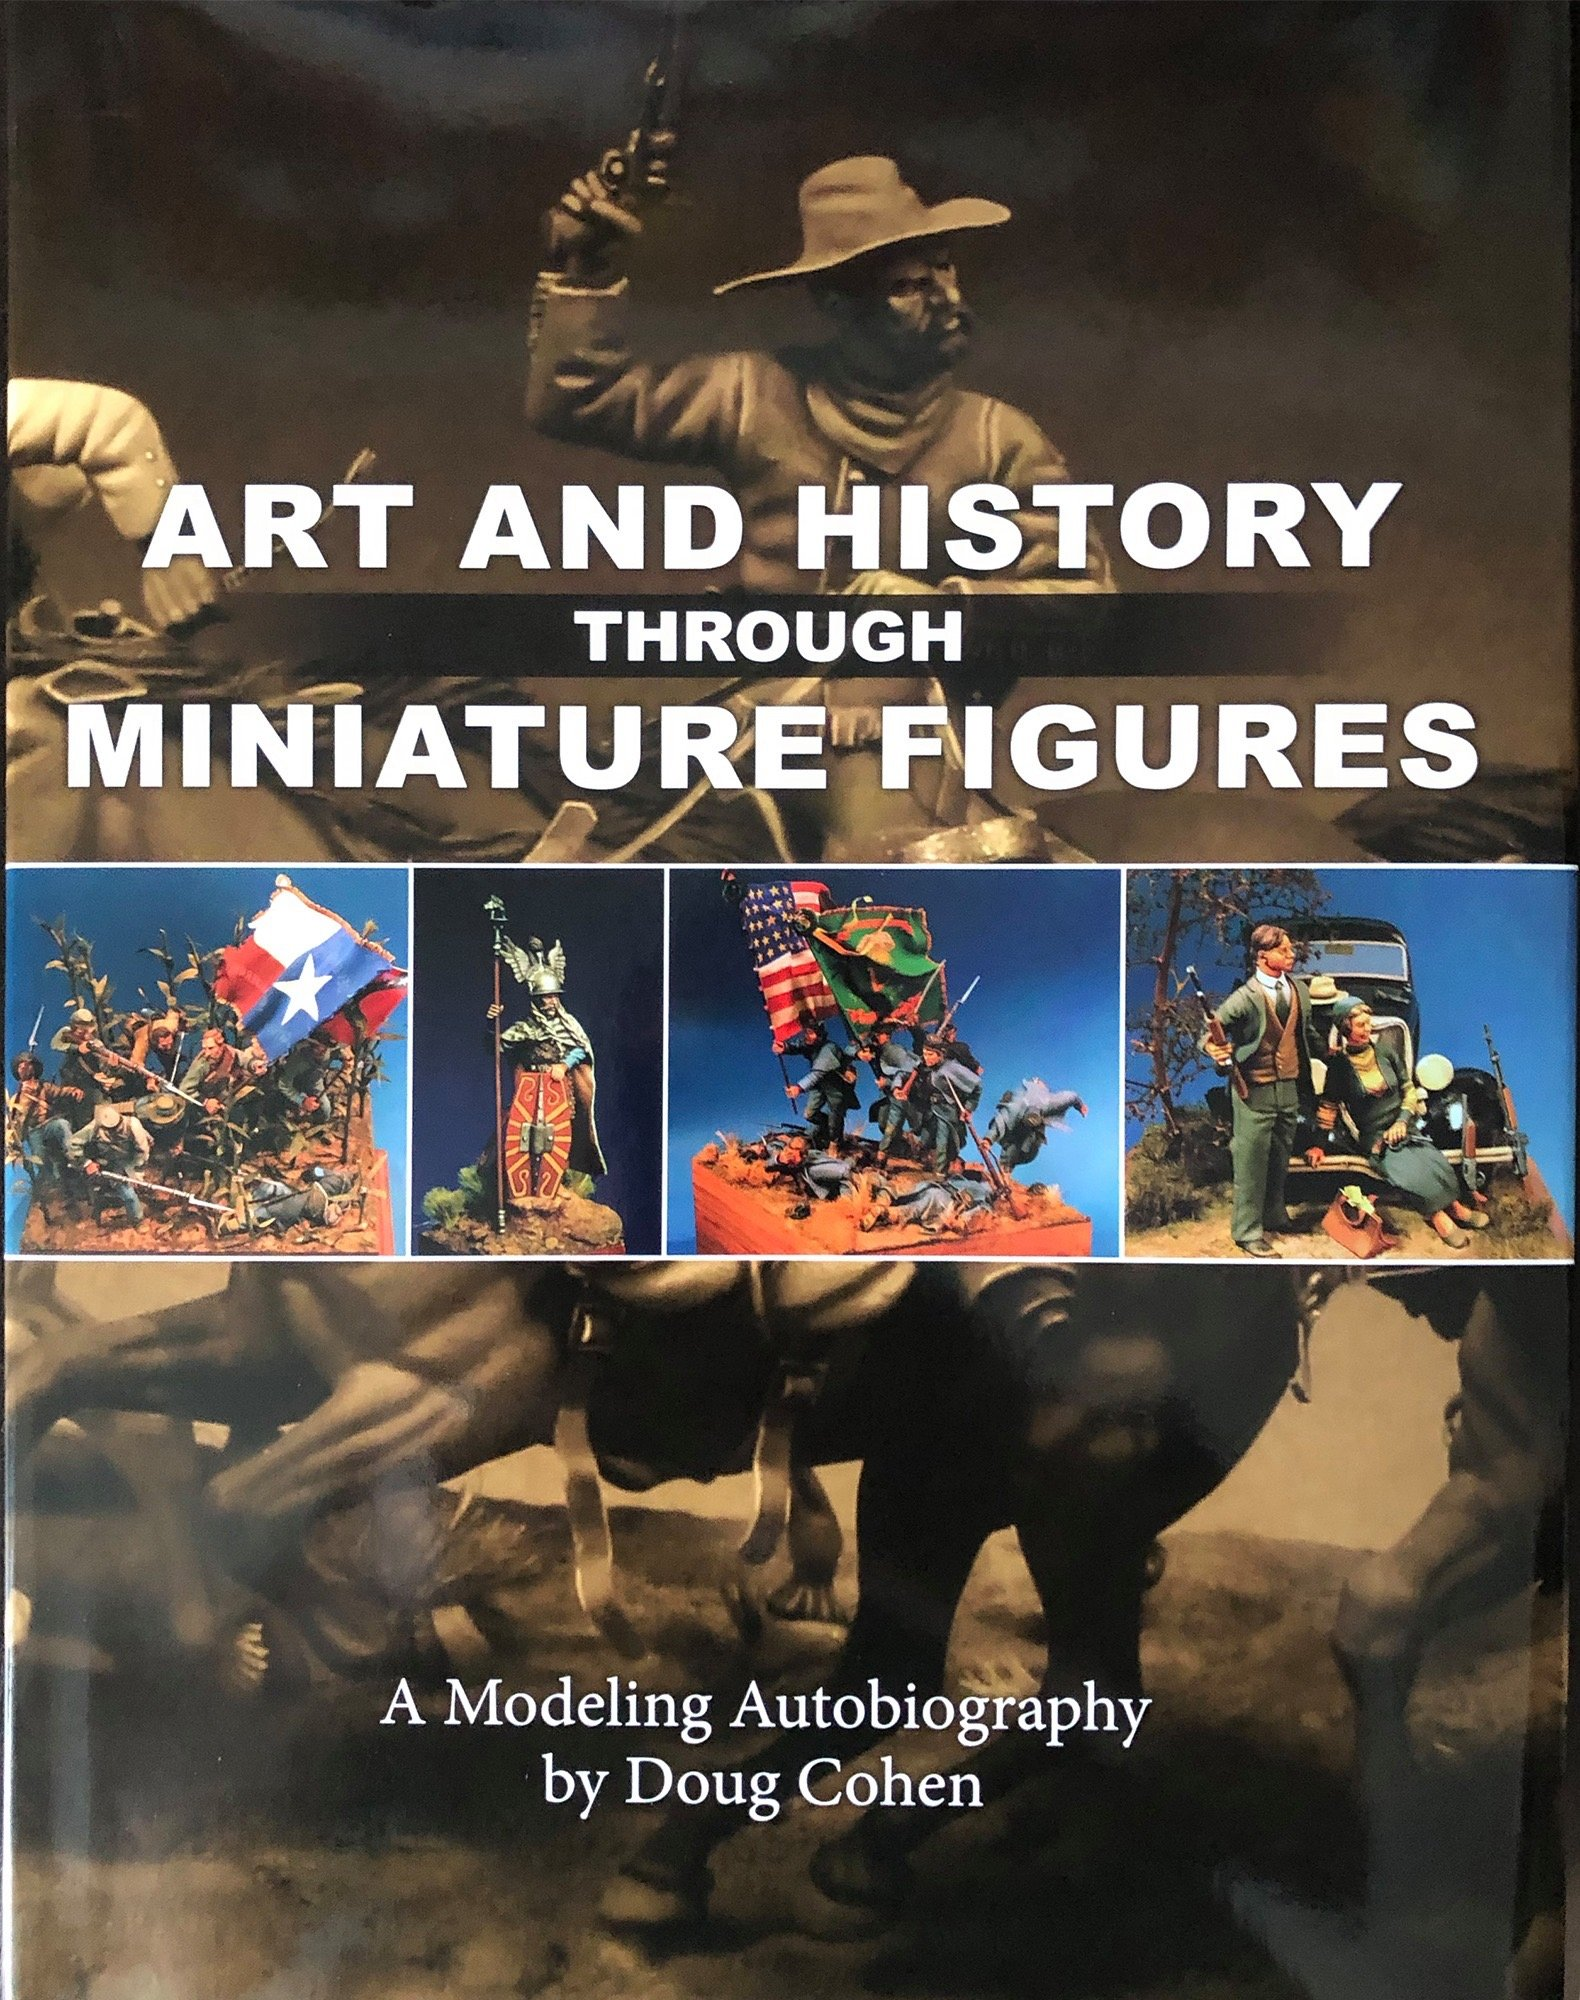 Art and History Through Miniature Figures  By Doug Cohen